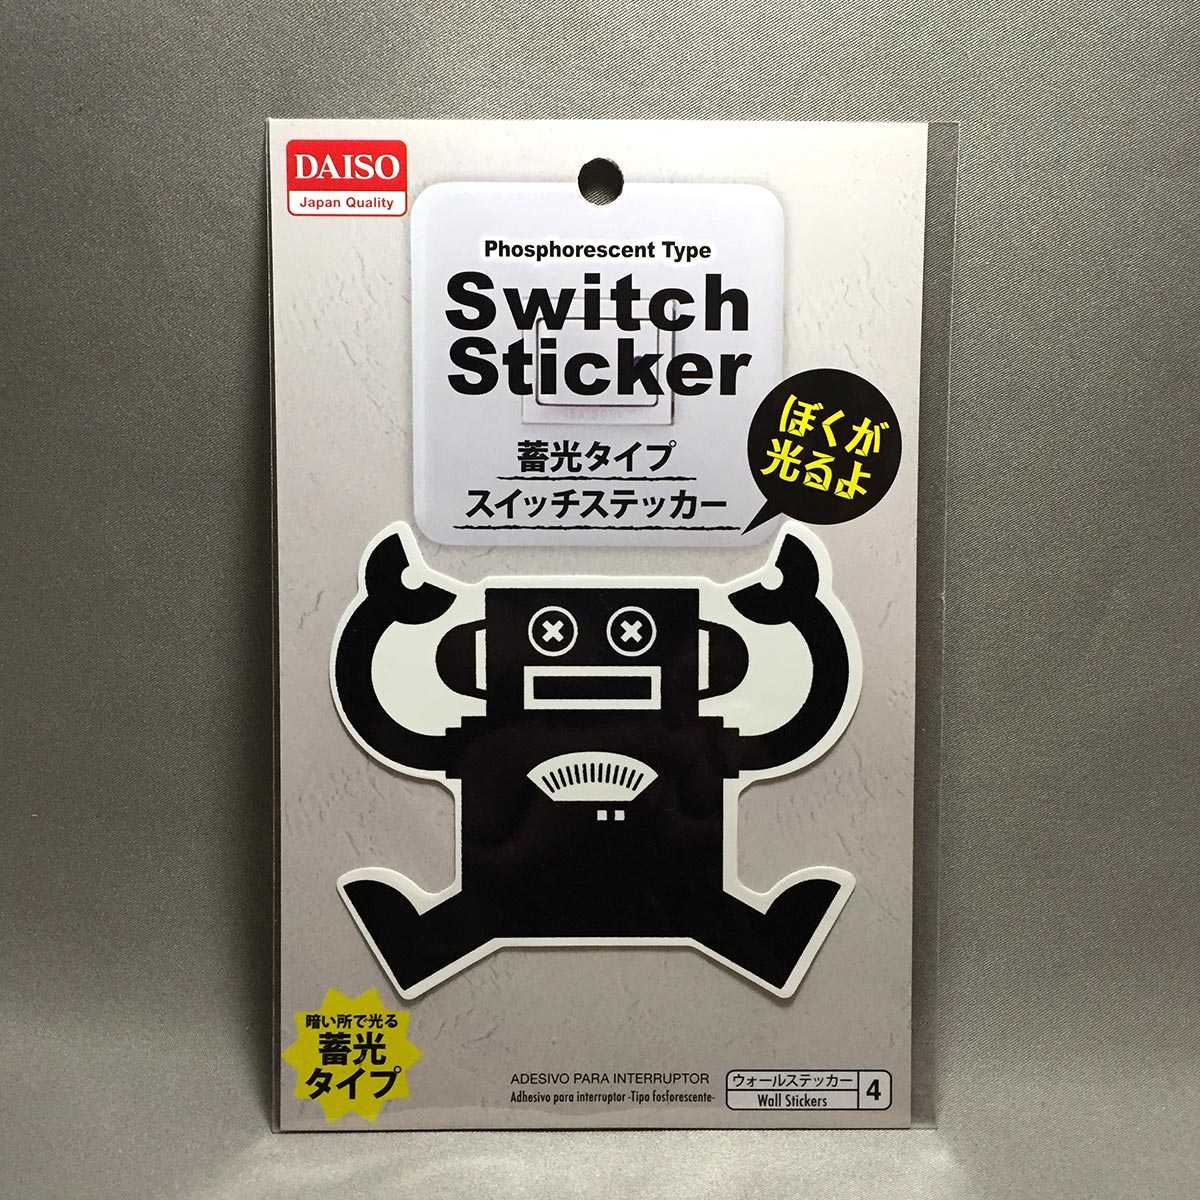 Switch Sticker Phosphorescent Type - Front packaging